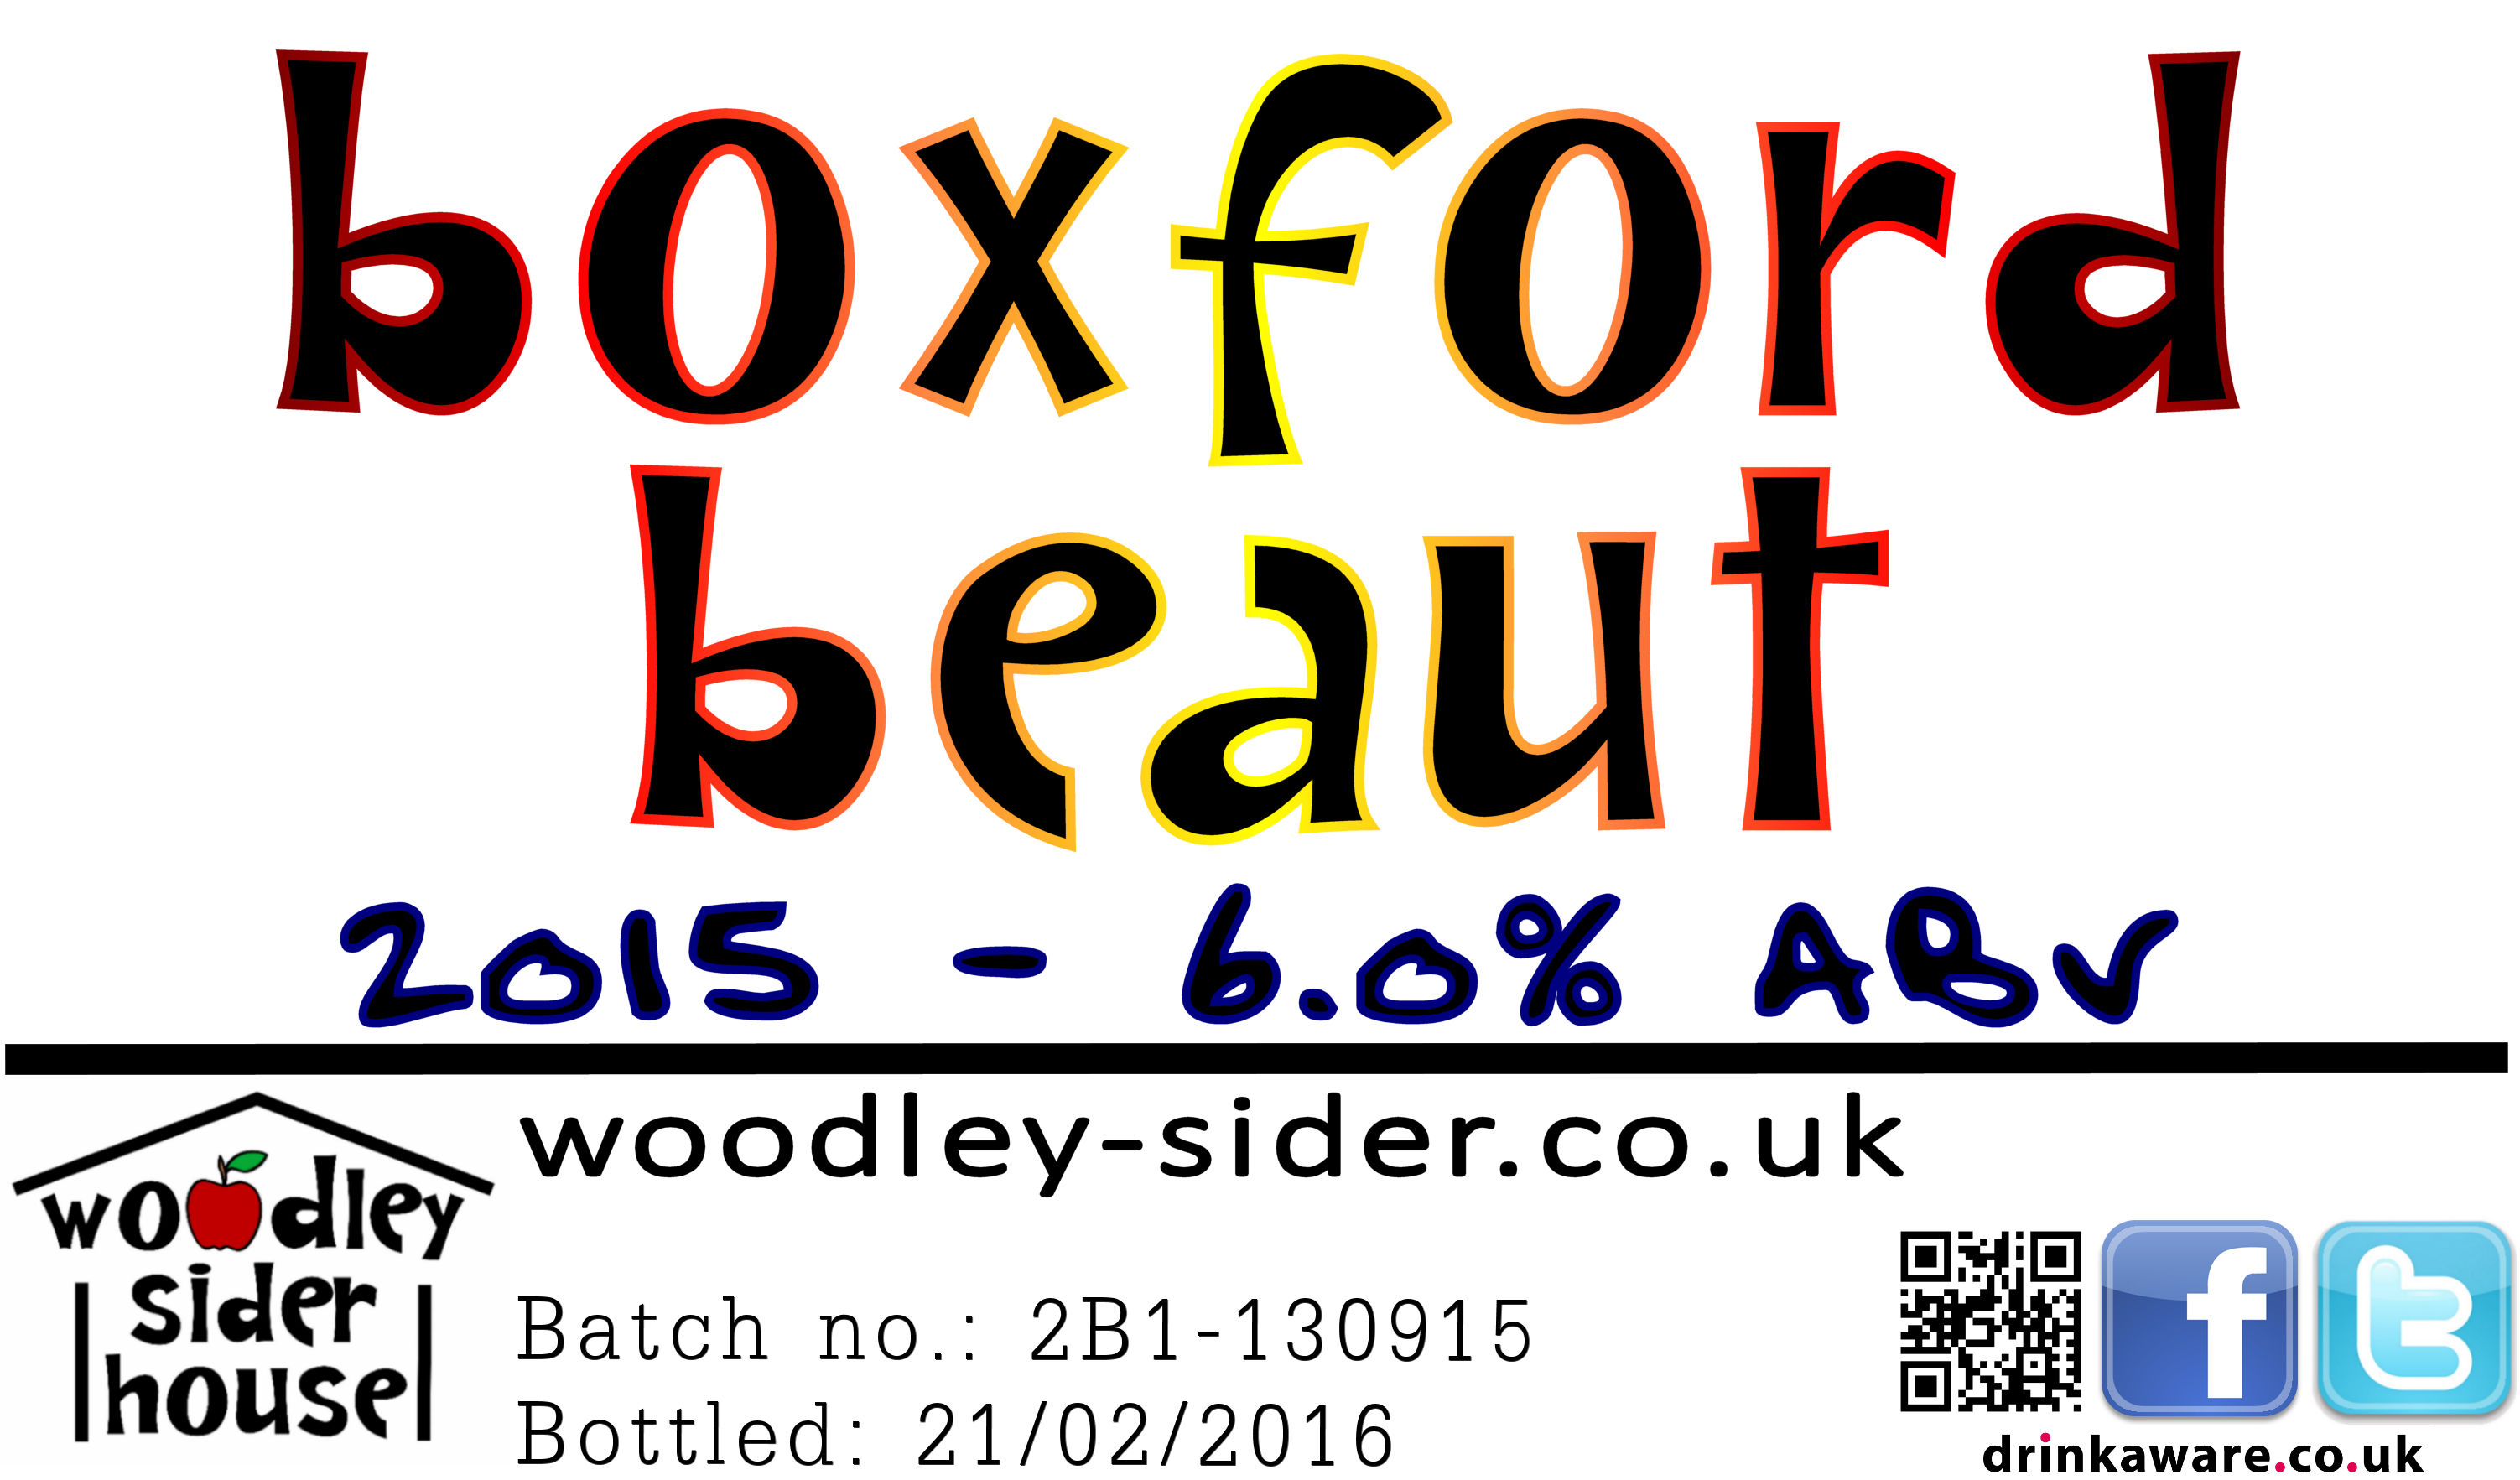 Boxford Beaut_Box.jpg